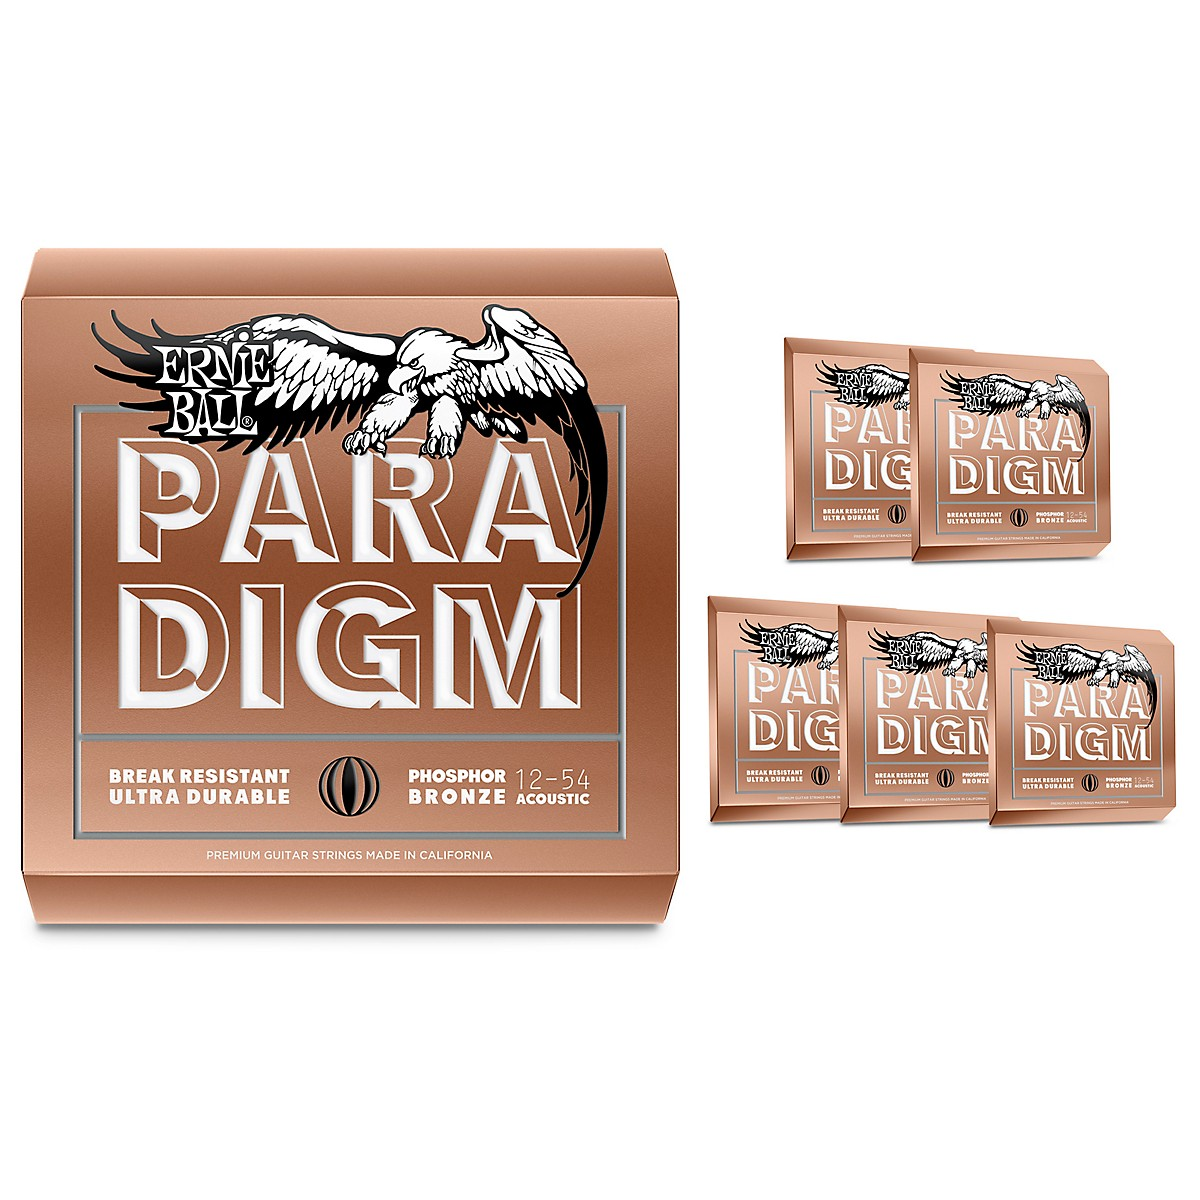 Ernie Ball Paradigm Phosphor Bronze Acoustic Guitar Strings, Medium Light (6-Pack)